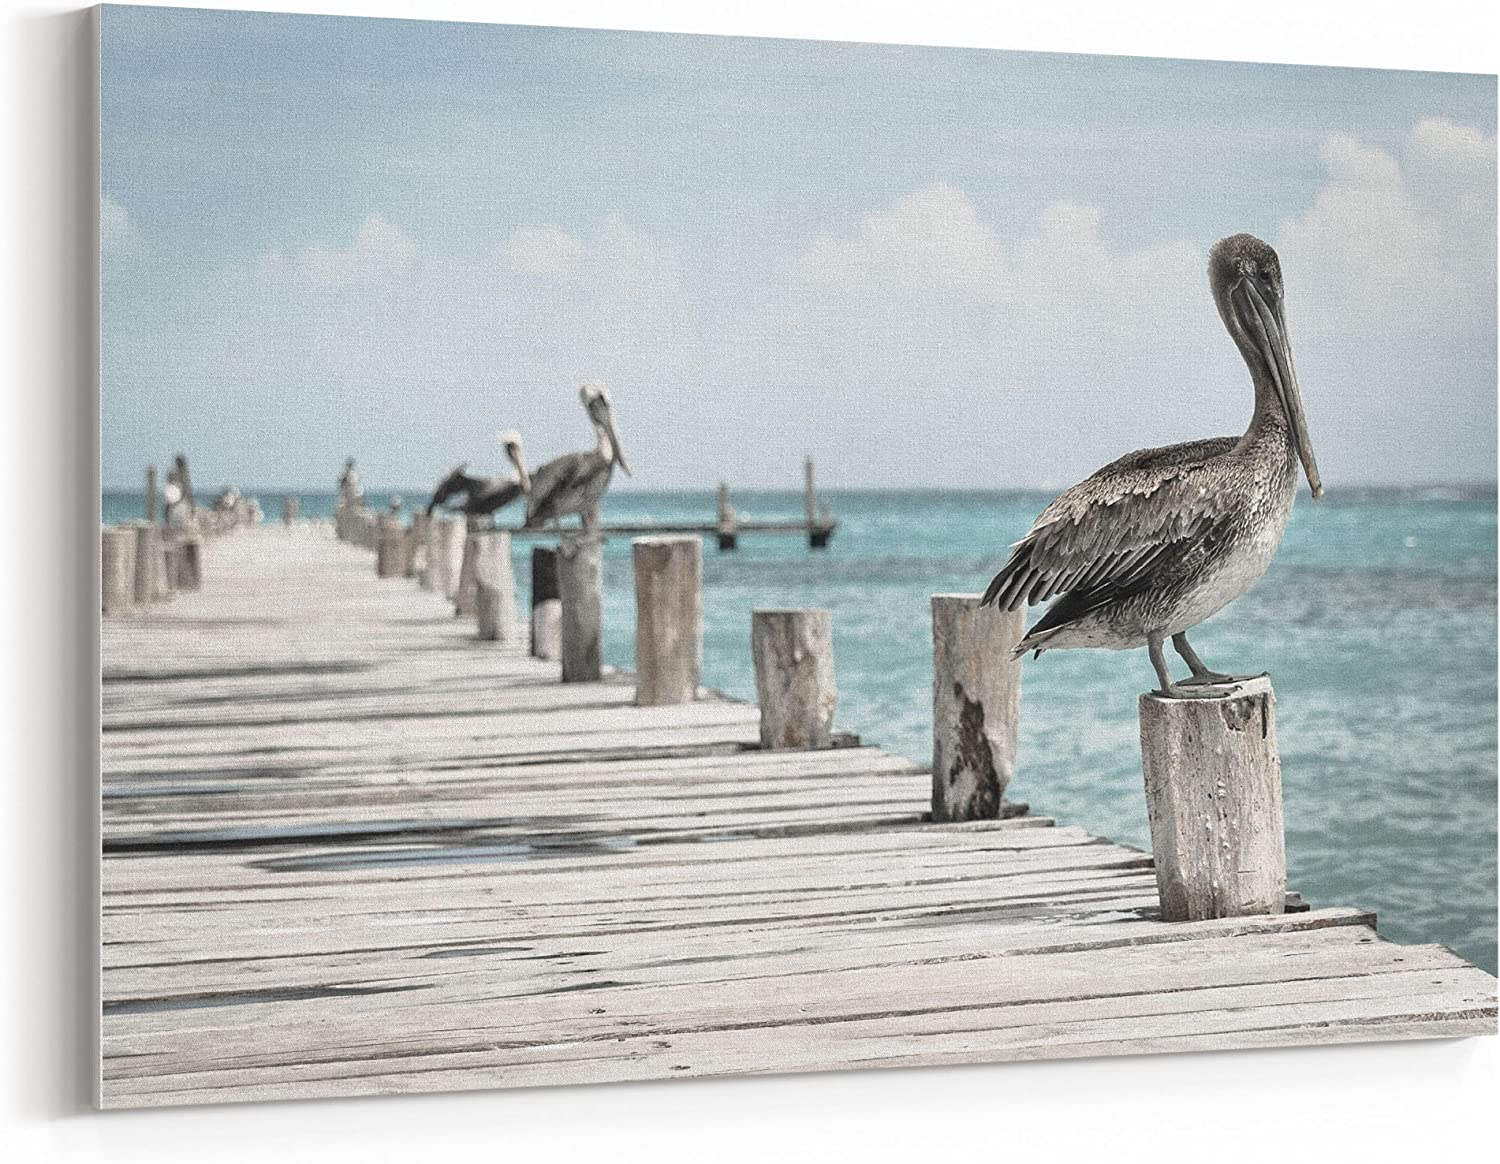 westlake art - Pier Pelican - Canvas Print Wall Art - Canvas Stretched Gallery Wrap Modern Picture Photography Artwork - Ready to Hang (24x36 Inch)